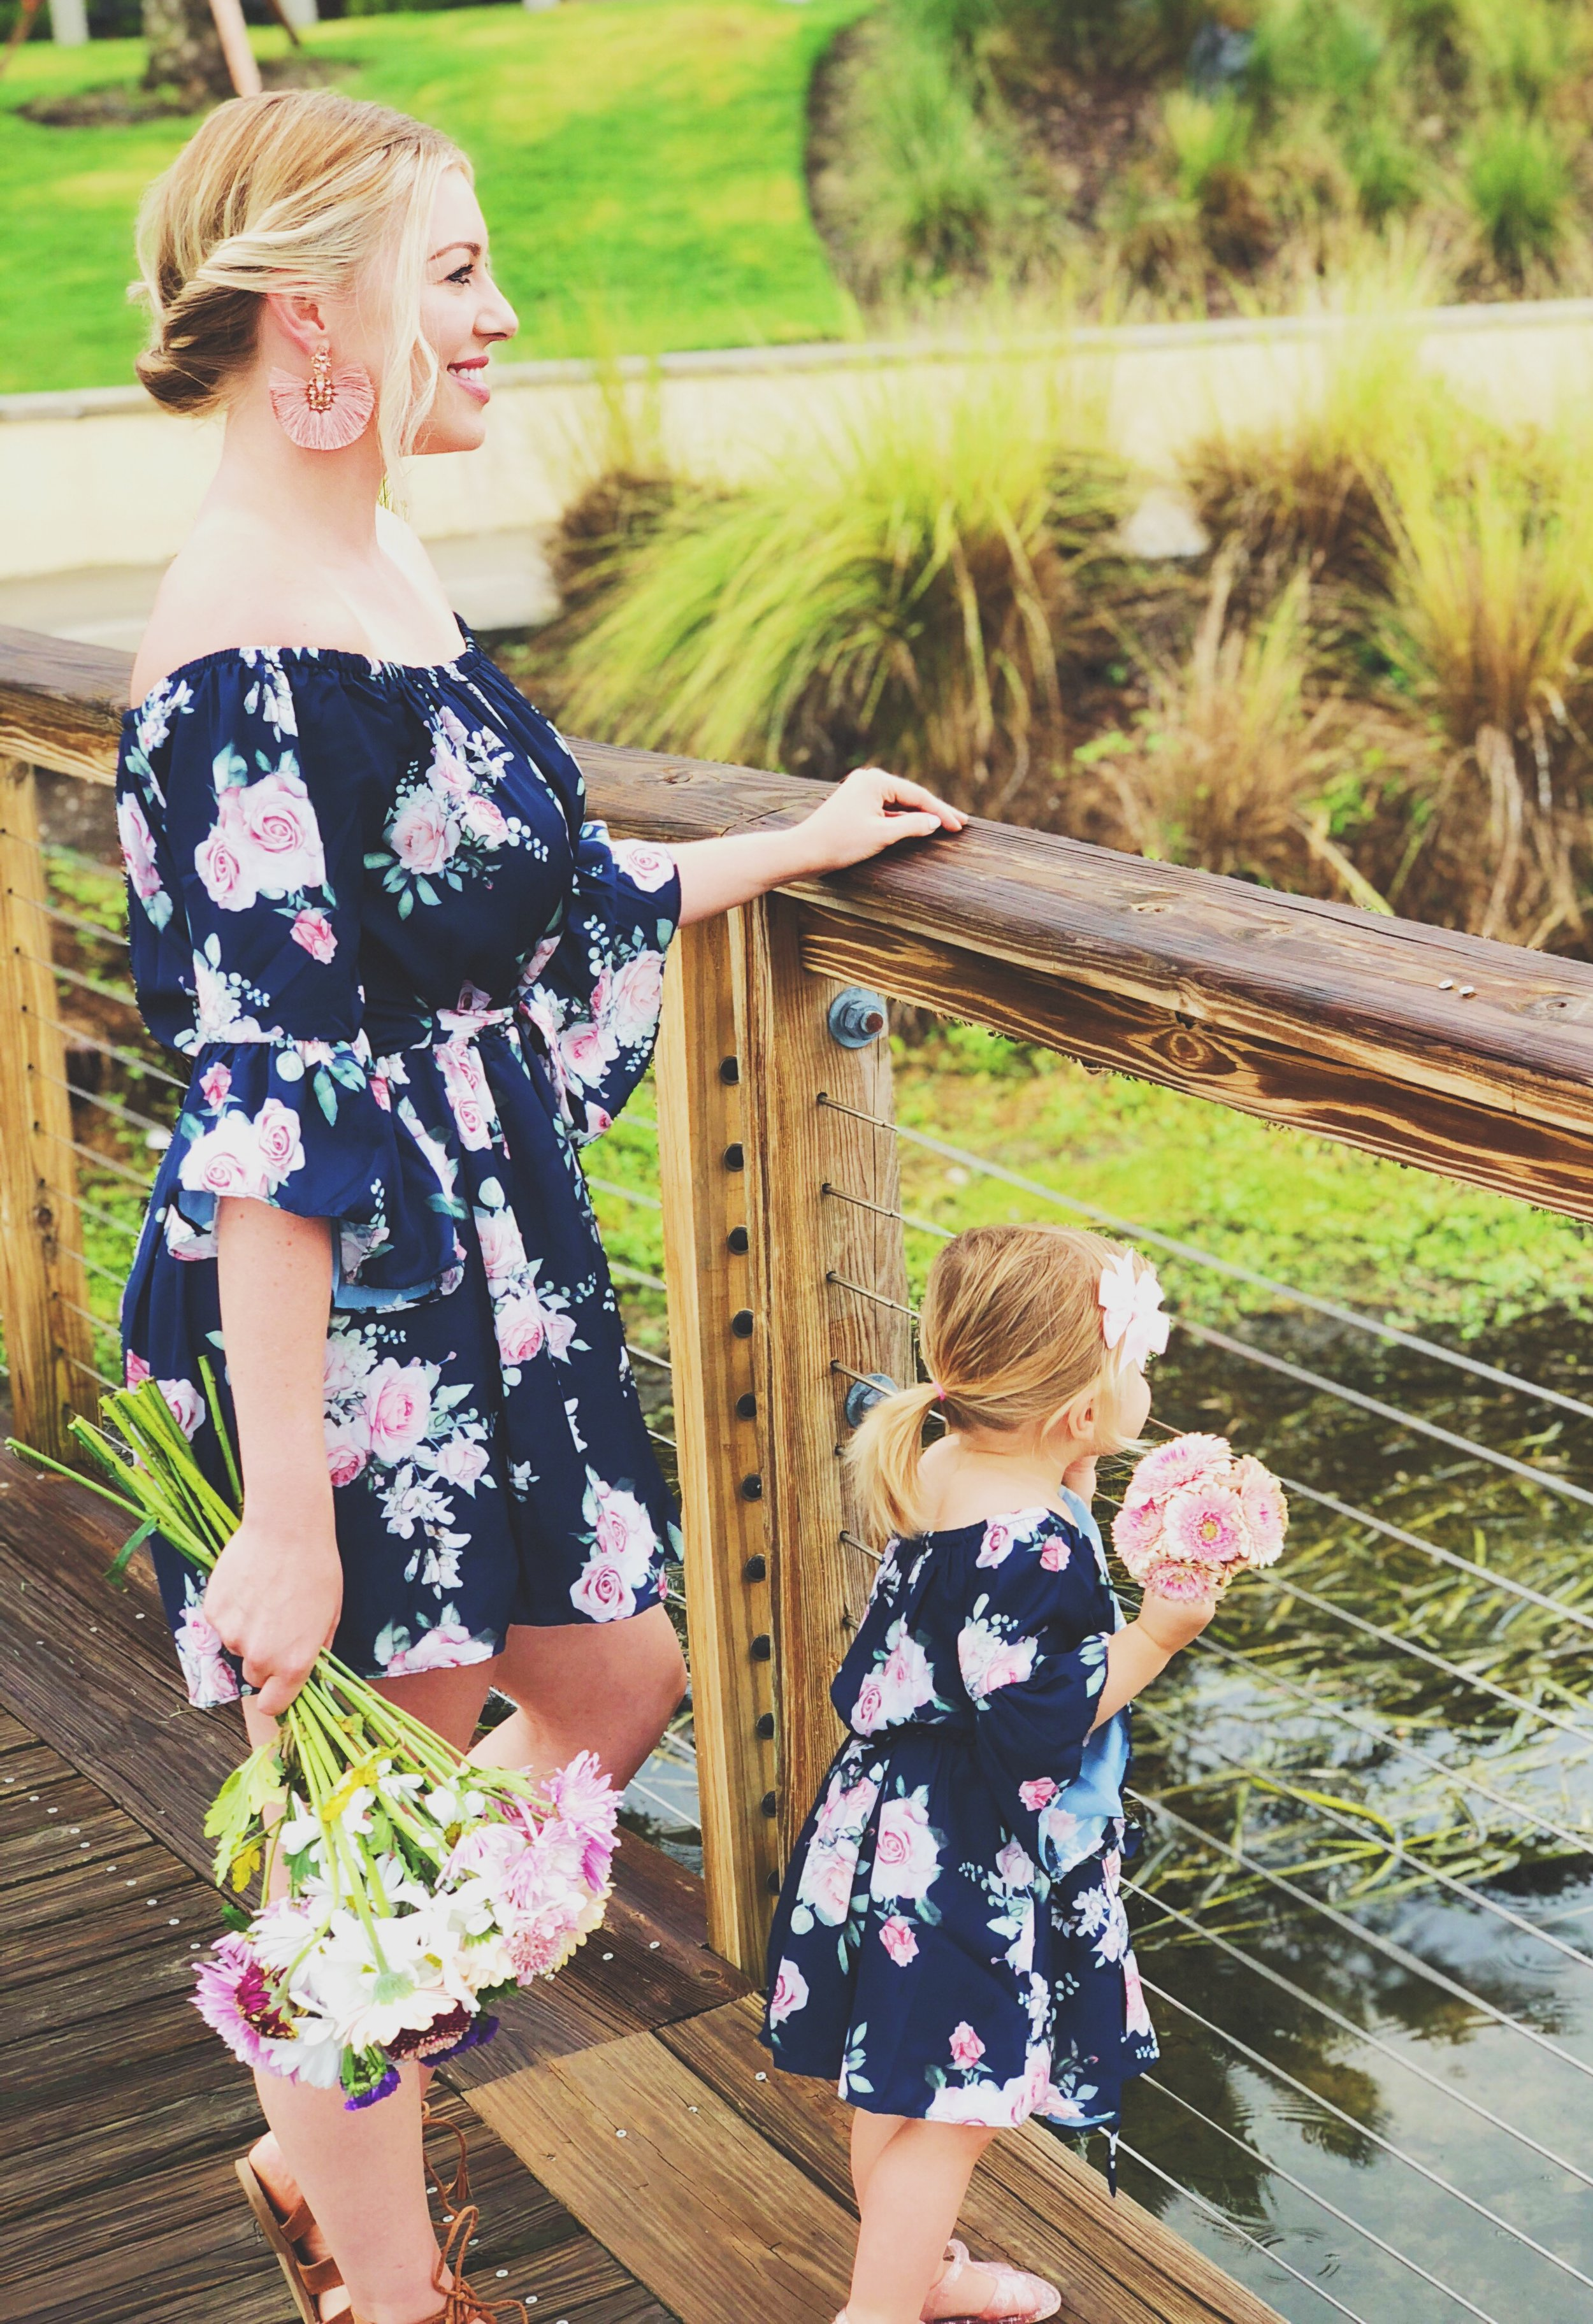 193e24daf An Honest Review: Mommy and Me Outfits from PatPat — evy bee + me